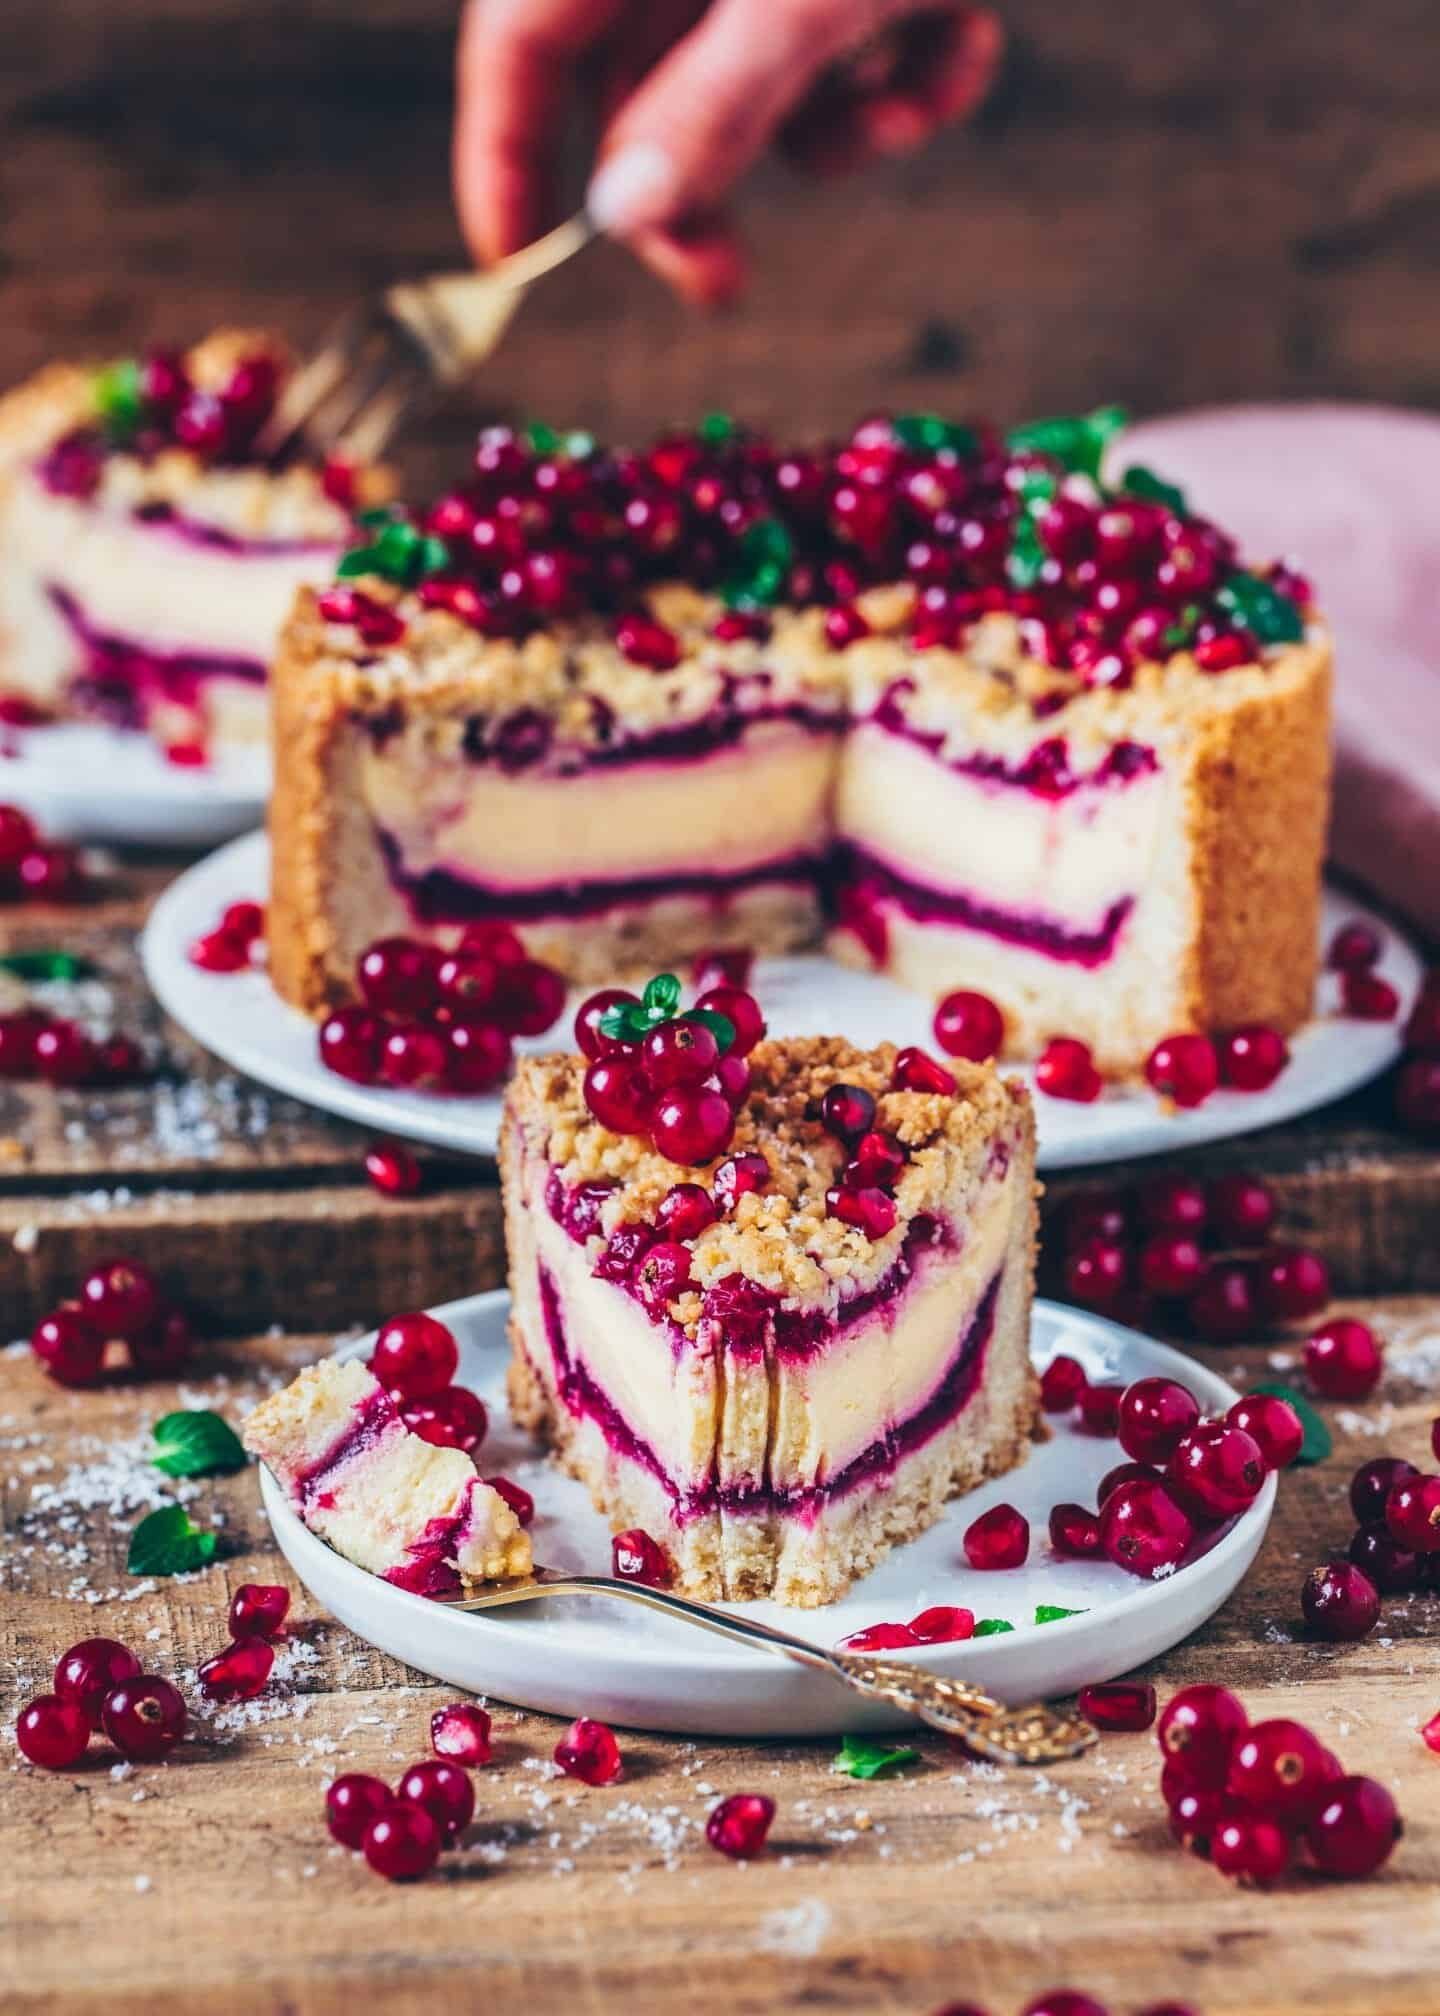 This vegan Red Currant Cheesecake with Streusel combines a Crumble Cake and a Cheesecake into one delicious dessert. It's the perfect combination, making for an amazing Vegan Cake for any occasion. You'll love how easily it can be made!